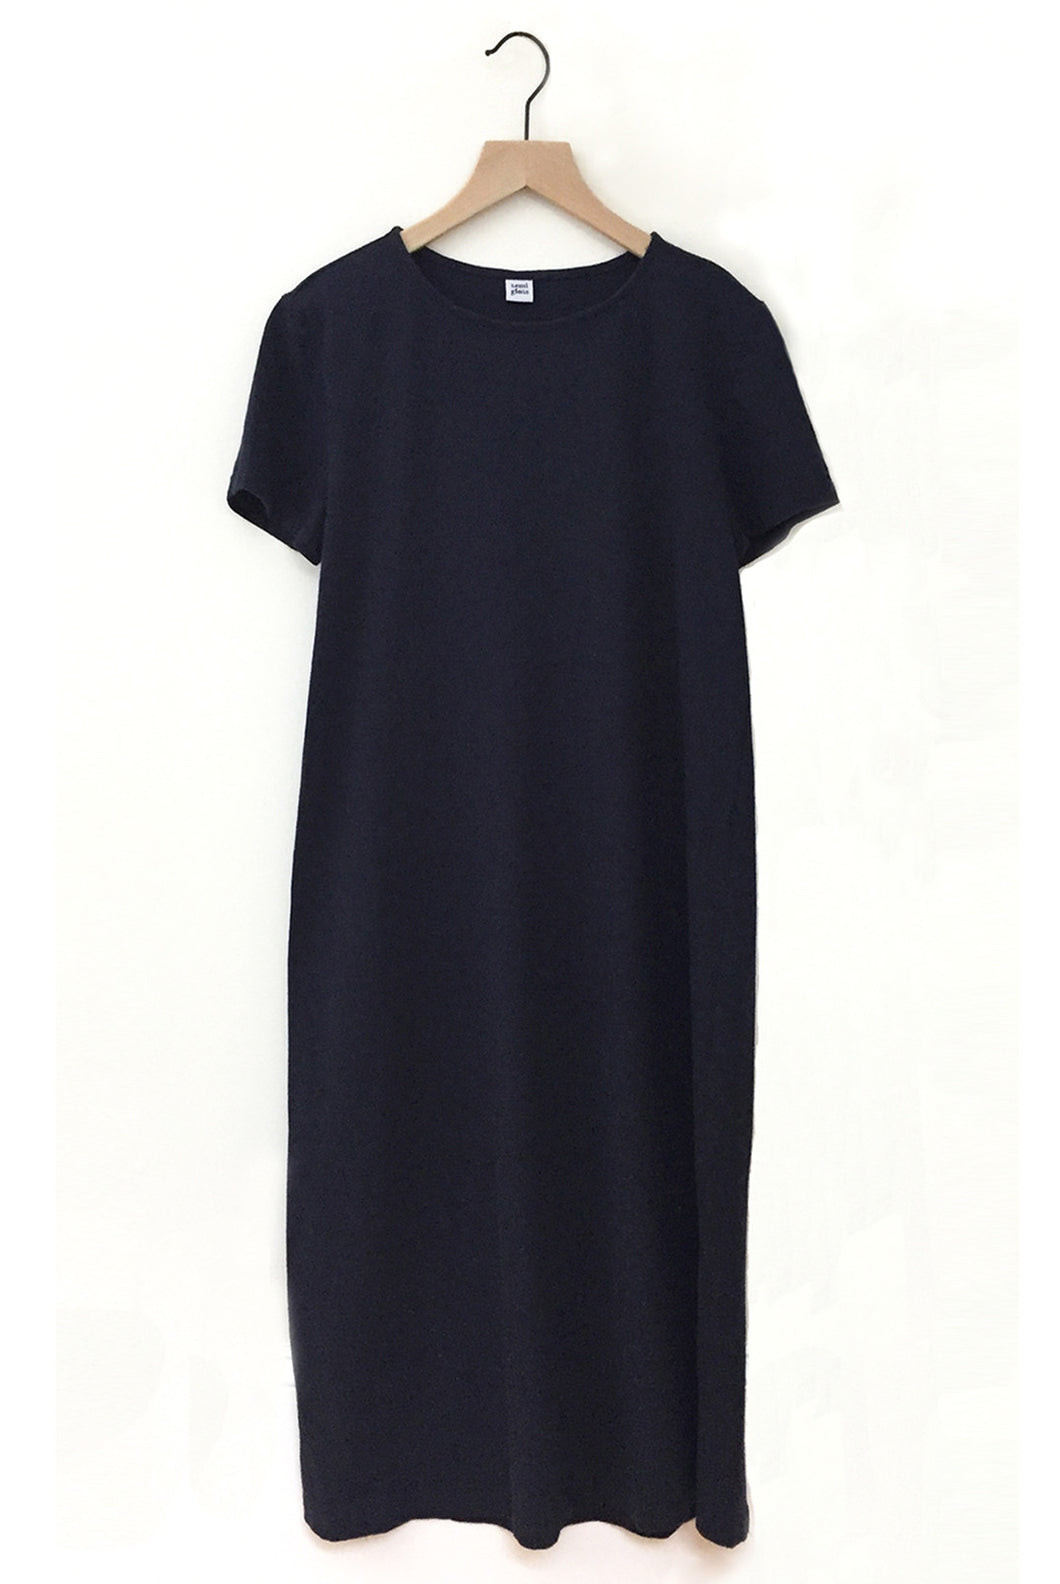 Cotton Linen Tee Dress - Navy